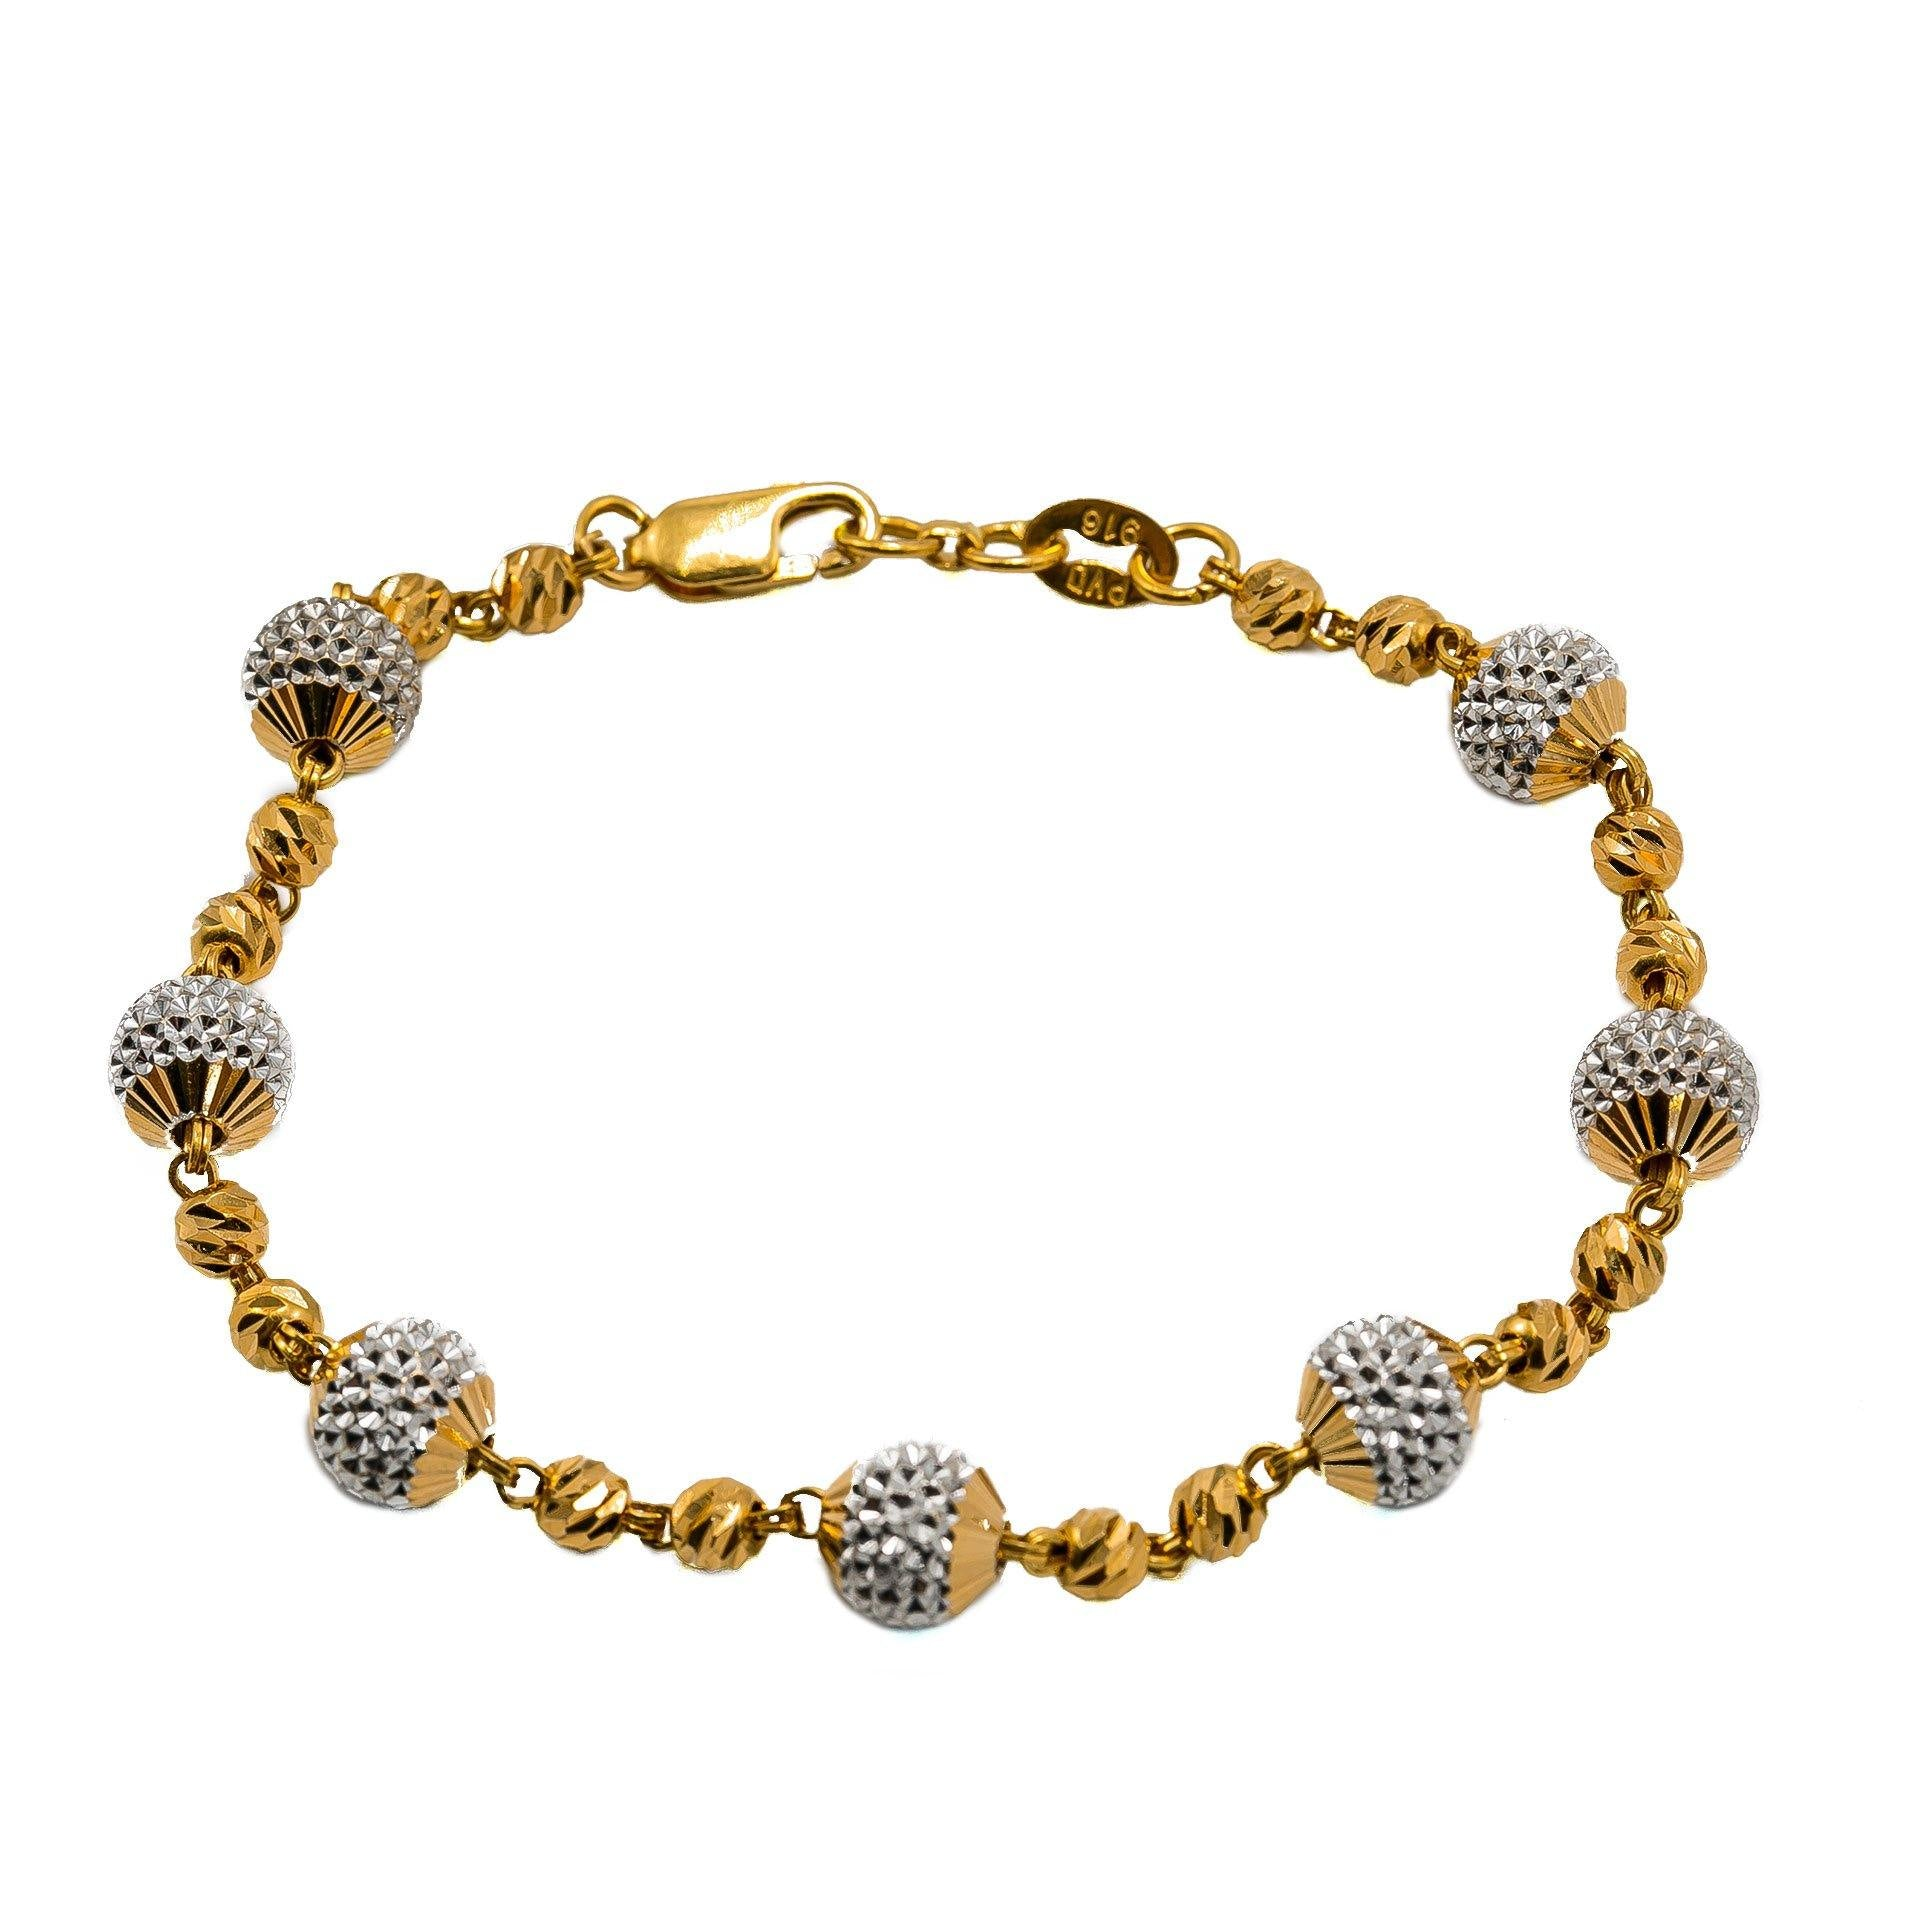 22k Multi Tone Gold Bracelet W Small Hammered Beads Large